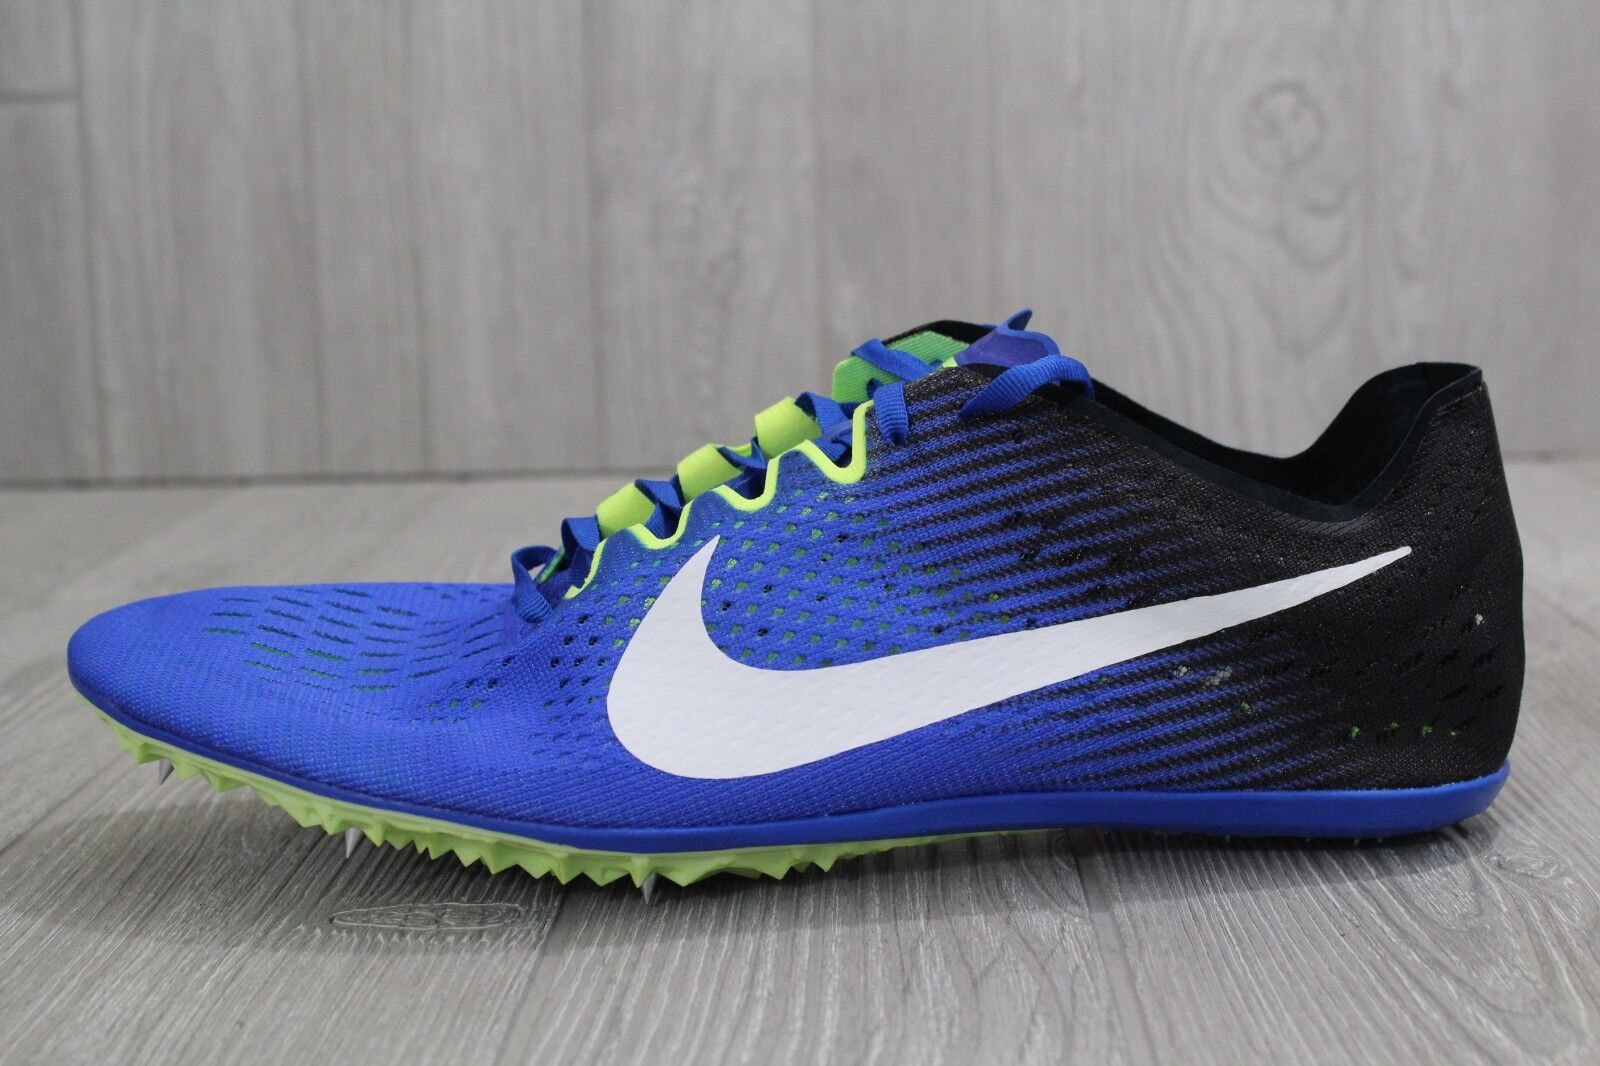 29 New Nike Zoom Victory Elite 2 Spikes Track Men's Size 6 - 13  835998-413